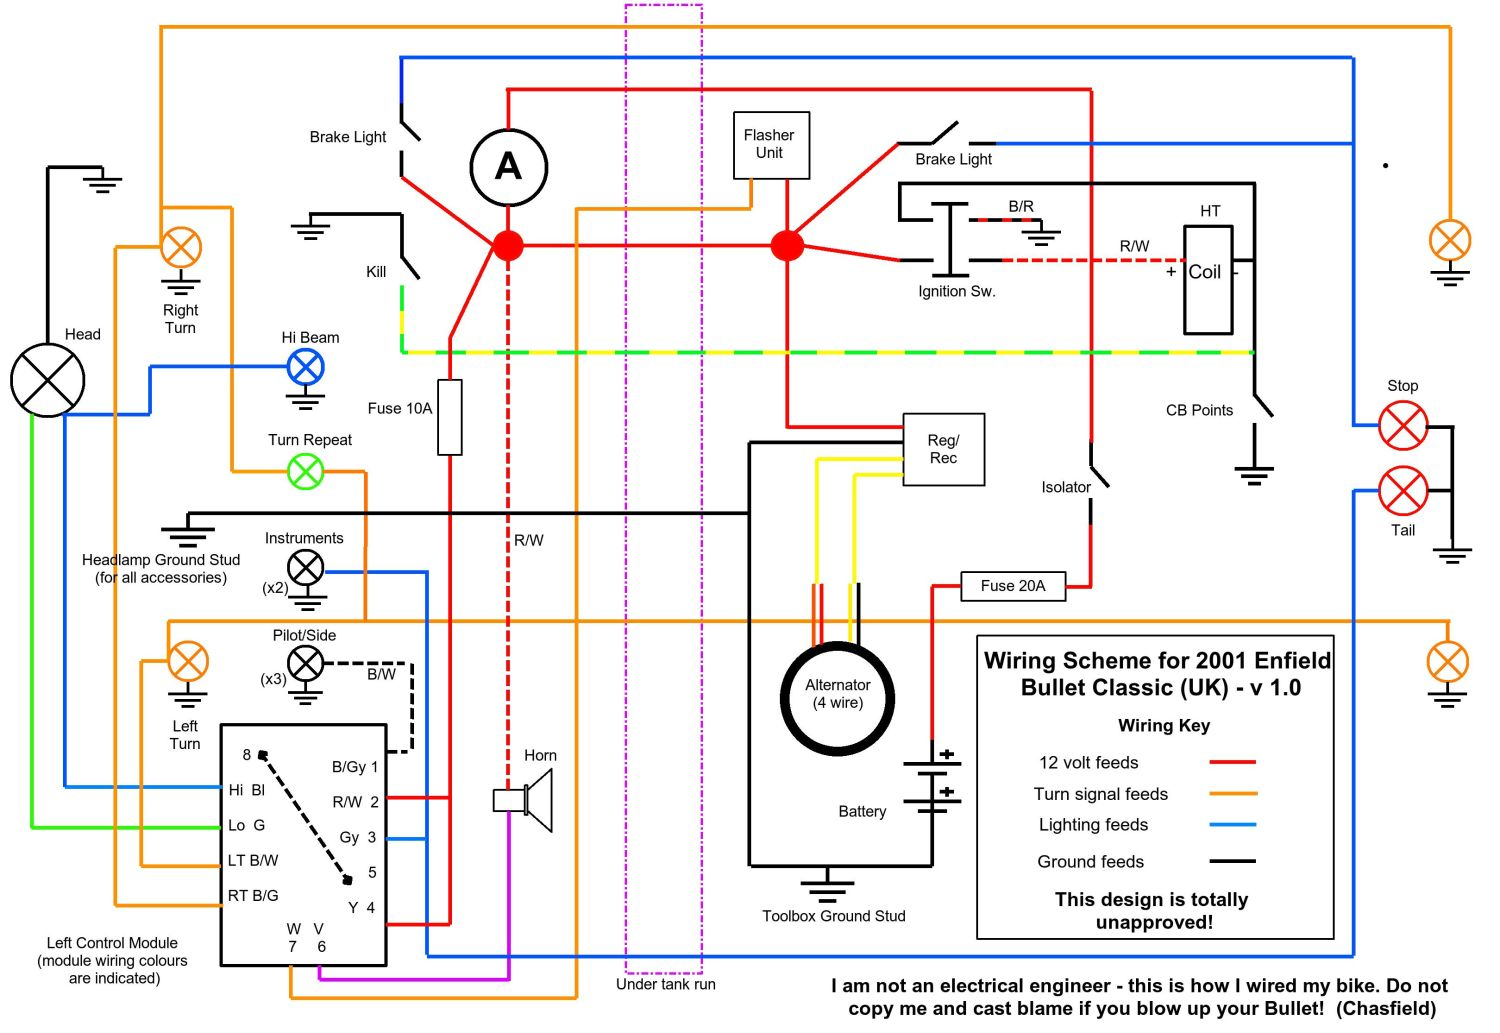 royal enfield 350 wiring diagram gibson es 350 wiring diagram royal enfield 250 wiring diagram - wiring diagram #10